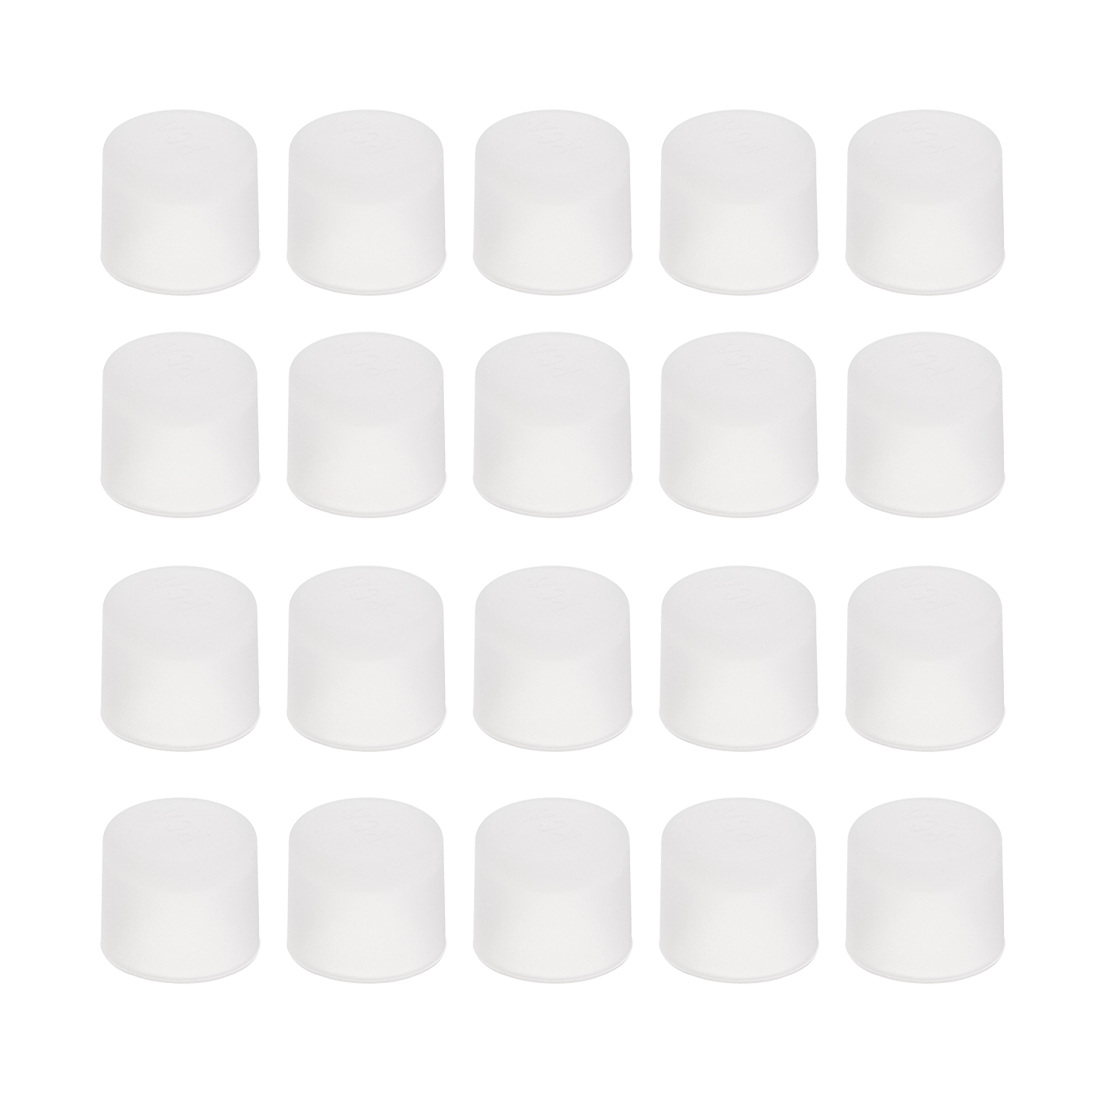 Ambitious Uxcell 20pcs Rca Female Connector Socket Jack Plug Protector Cap Cover Clear For Dvd Amplifier Av Receiver Dust Proof In Pain